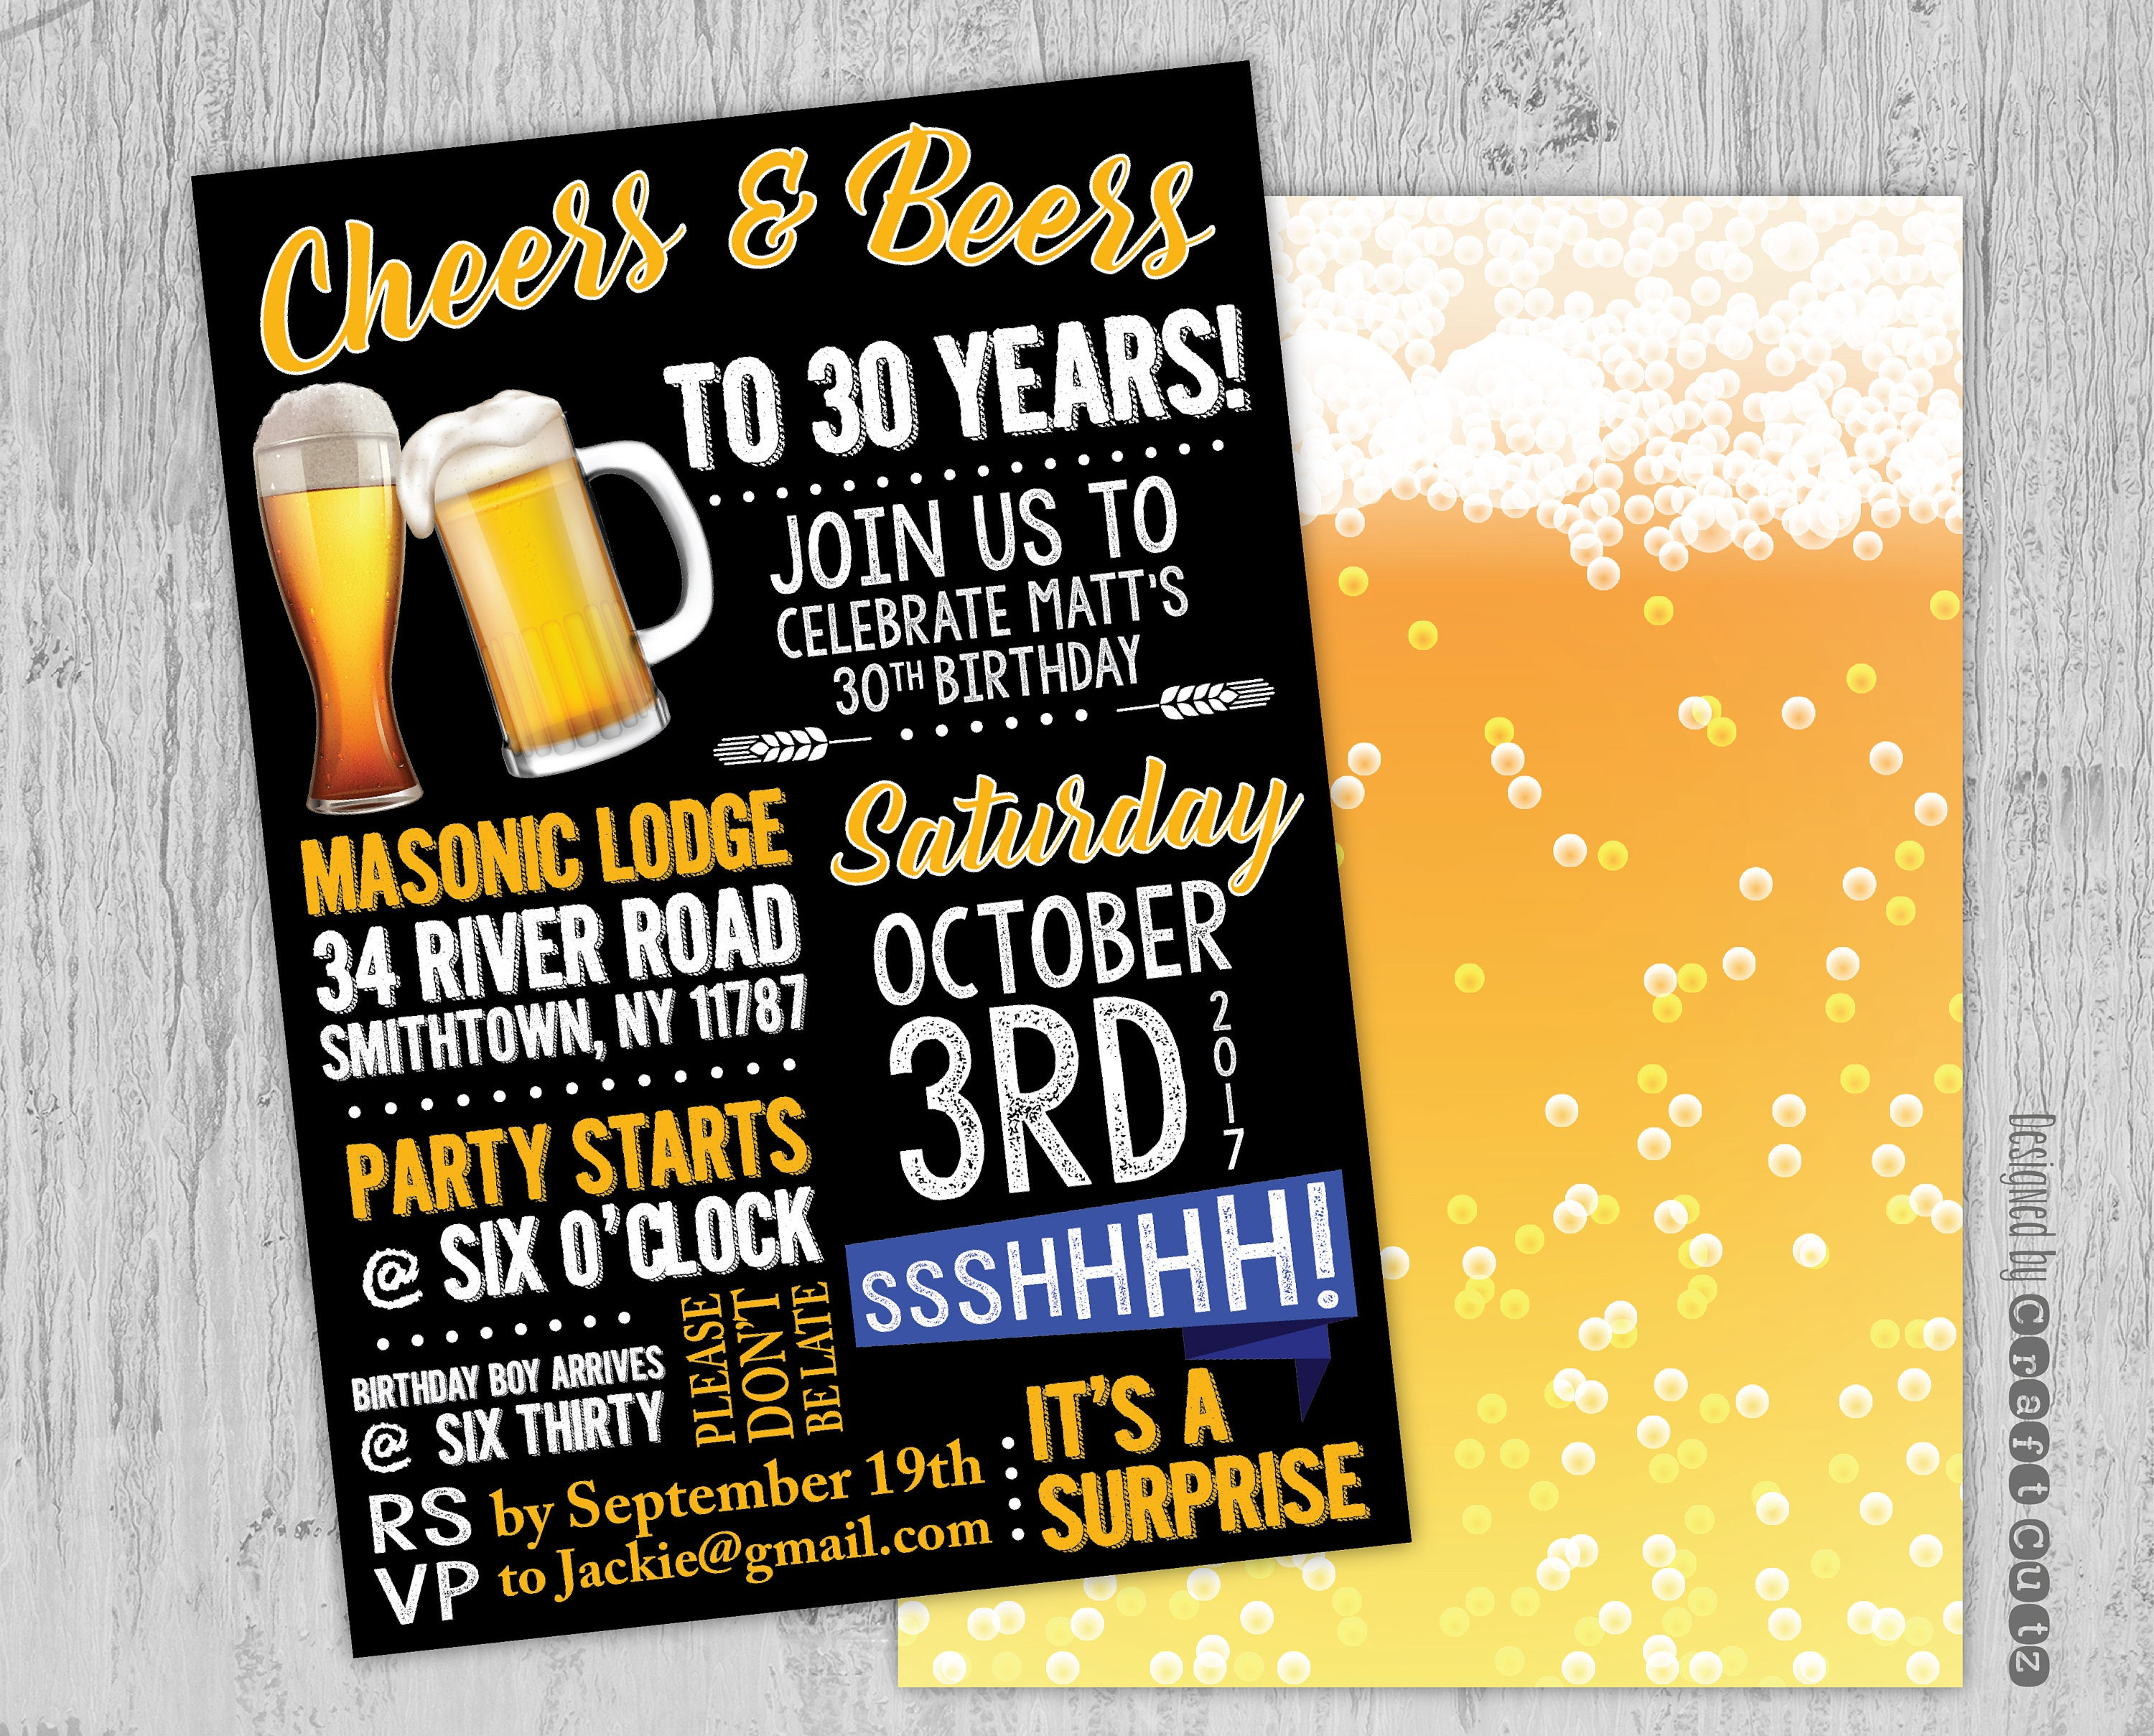 Cheers And Beers To 30 Years Invitation Beer Party Etsy